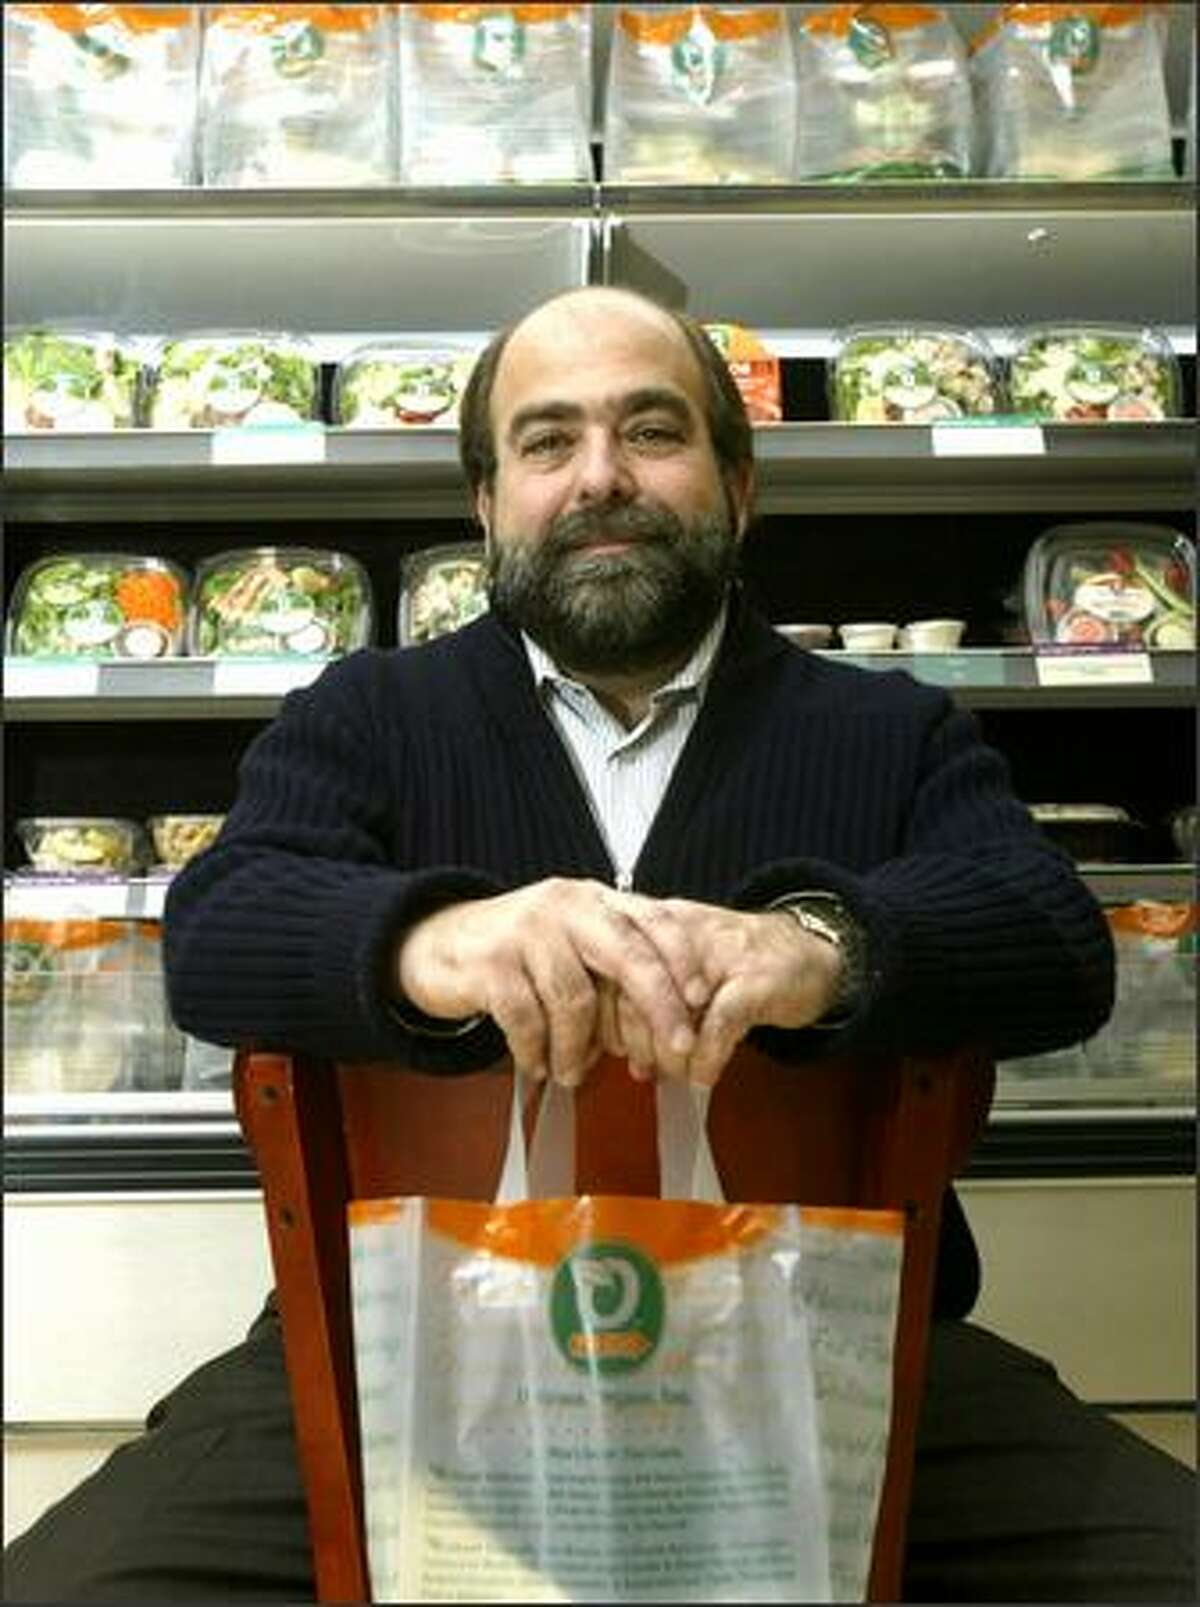 Jason Brown is the chief executive and founder of Organic To Go, which opened its first store in Seattle in 2005.